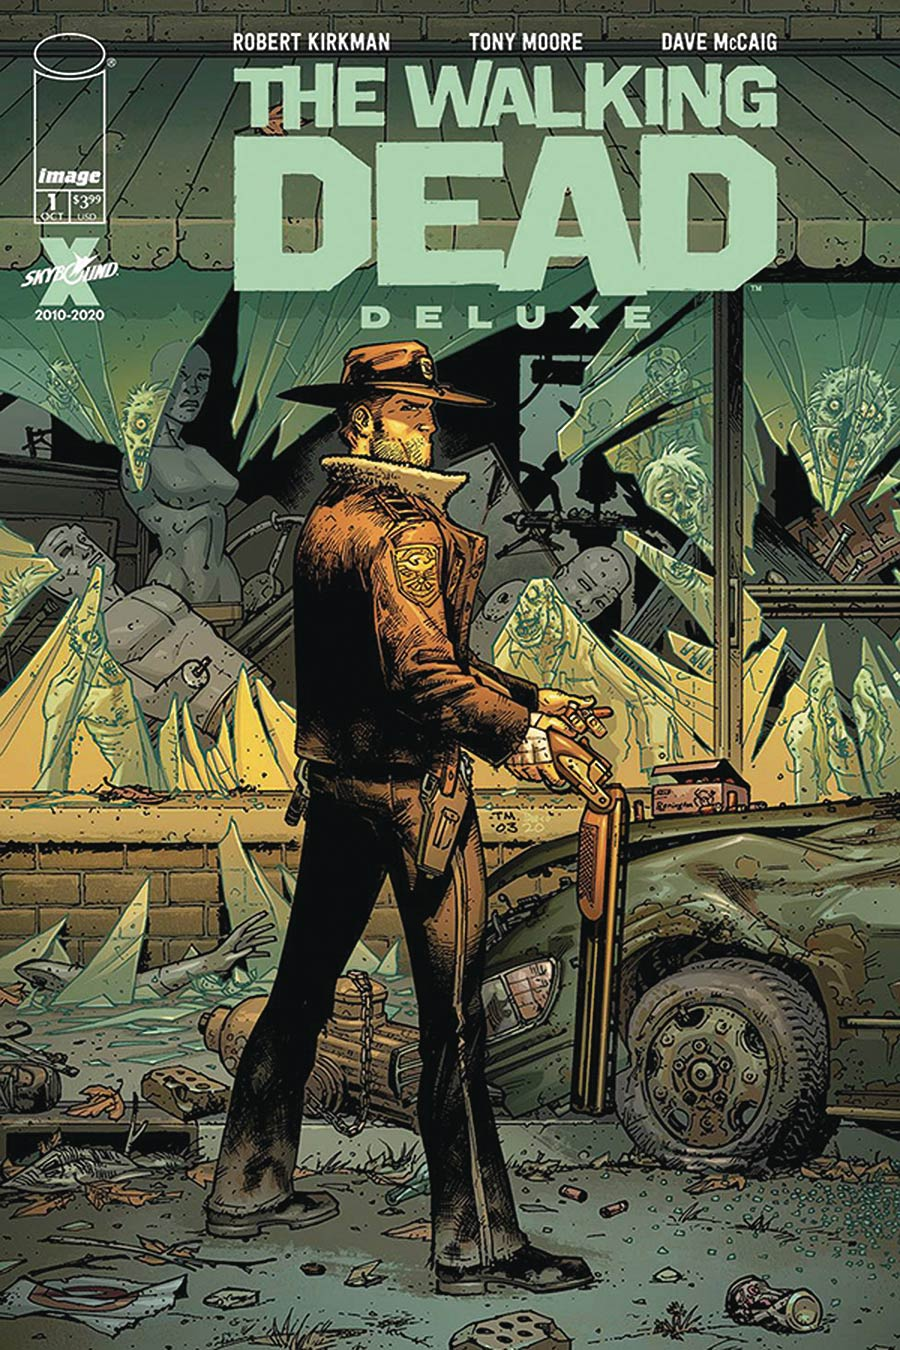 Walking Dead Deluxe #1 Cover F DF Tony Moore Cover CGC Graded